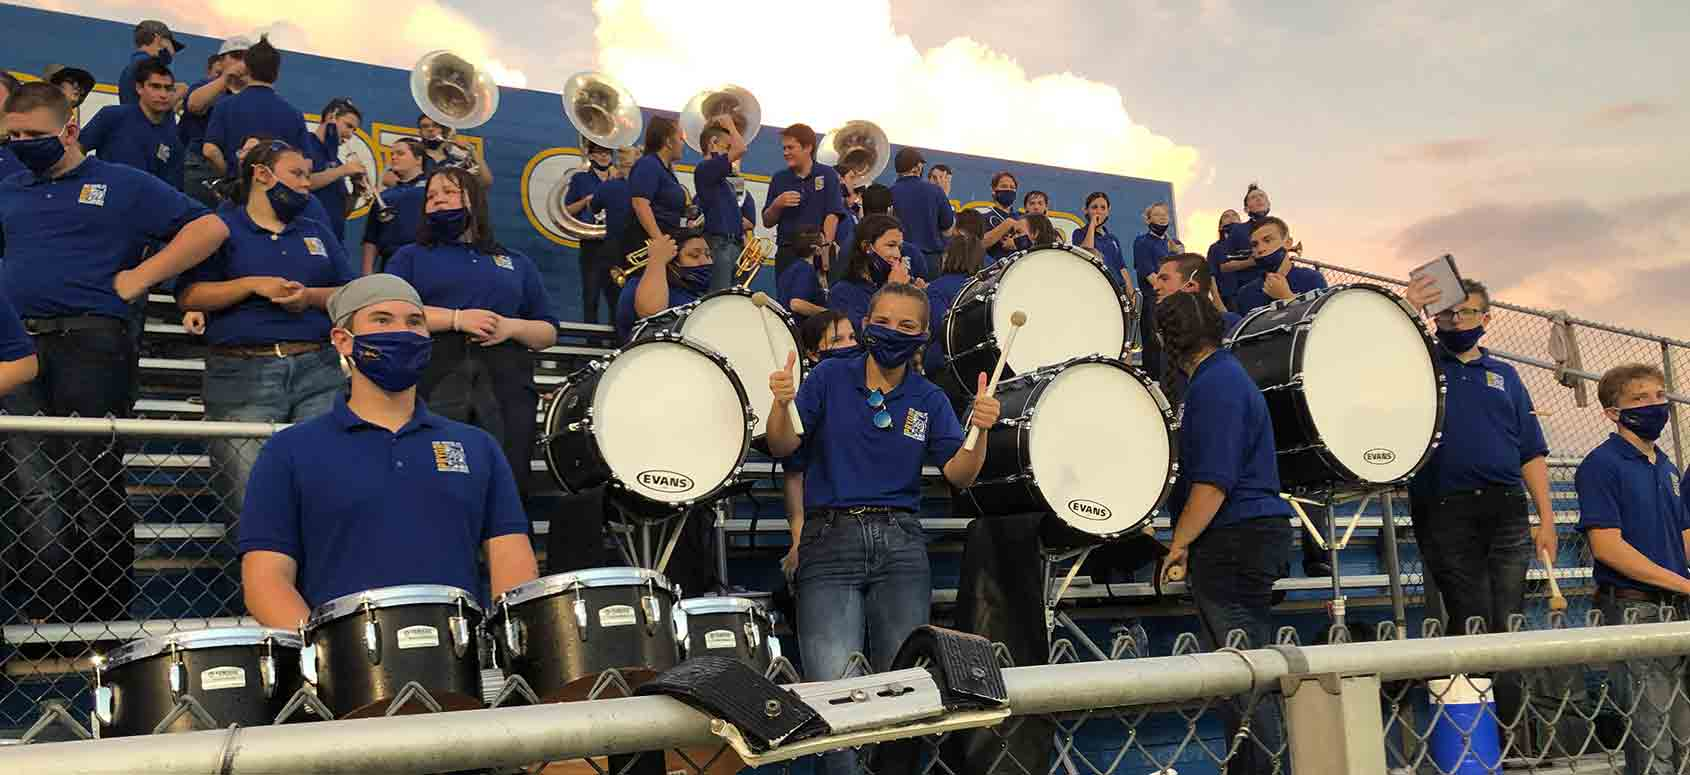 band in stands